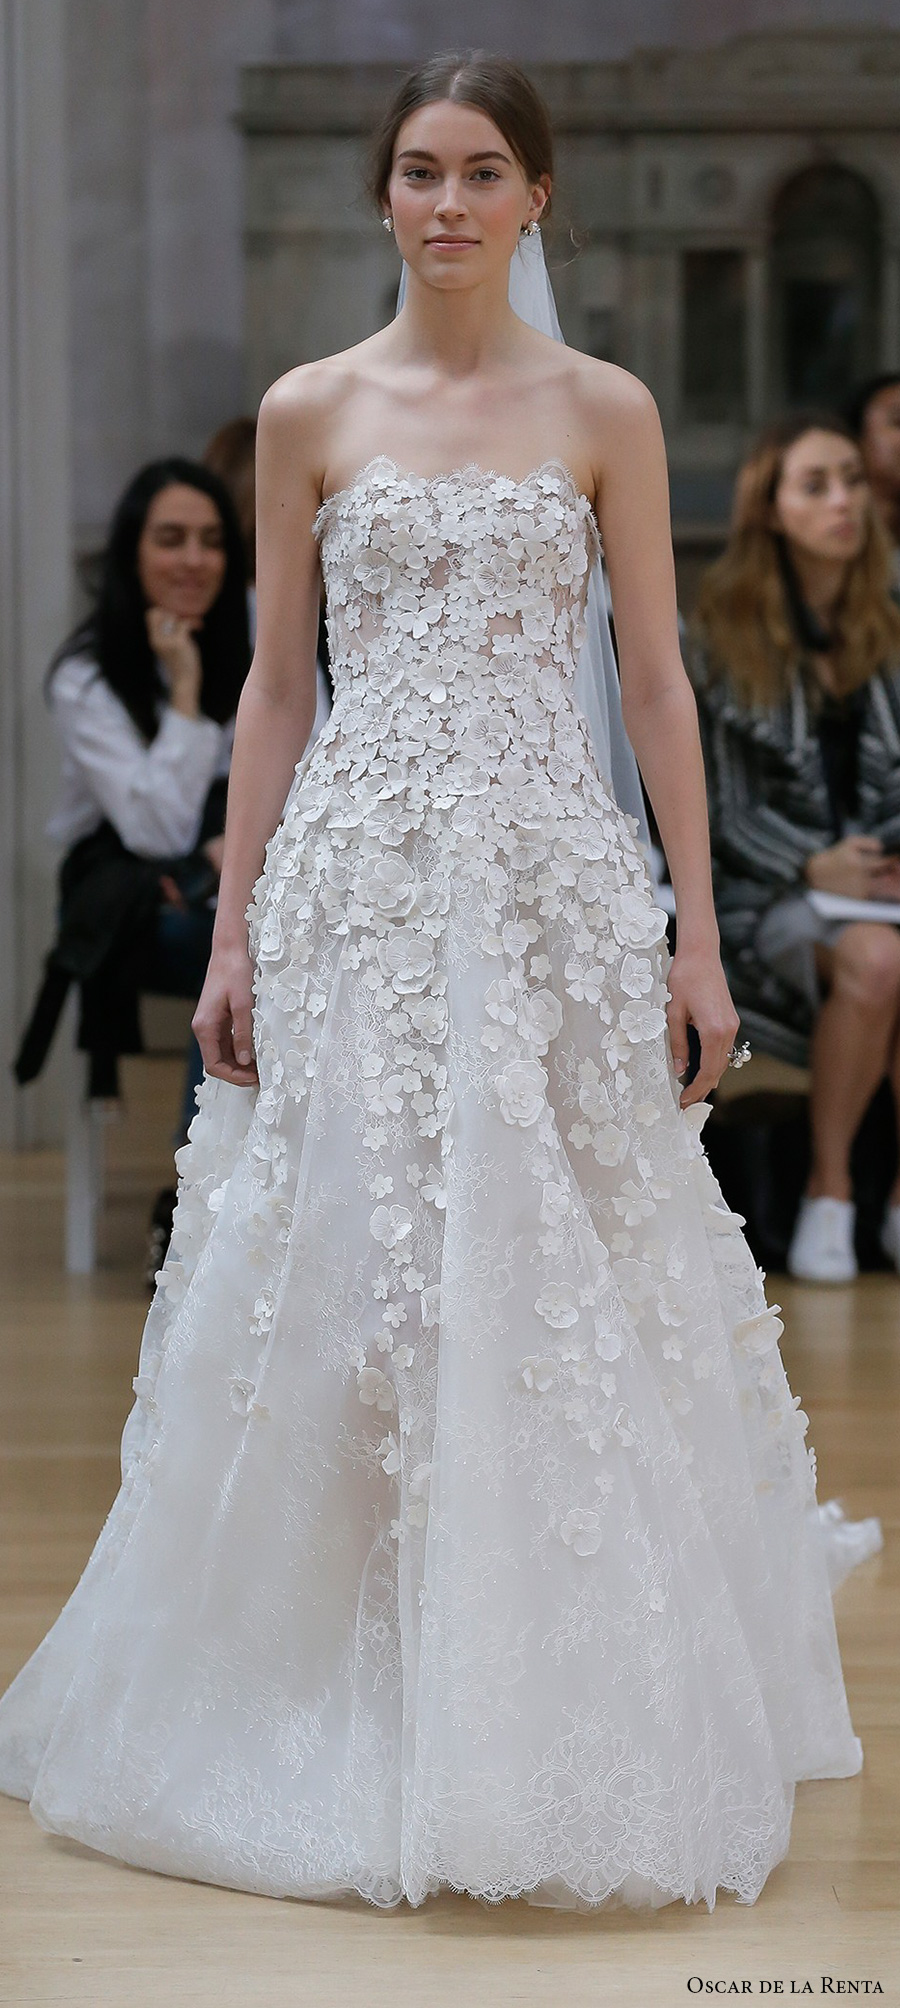 Oscar De La Renta Spring 2018 Wedding Dresses on oscar de la renta words